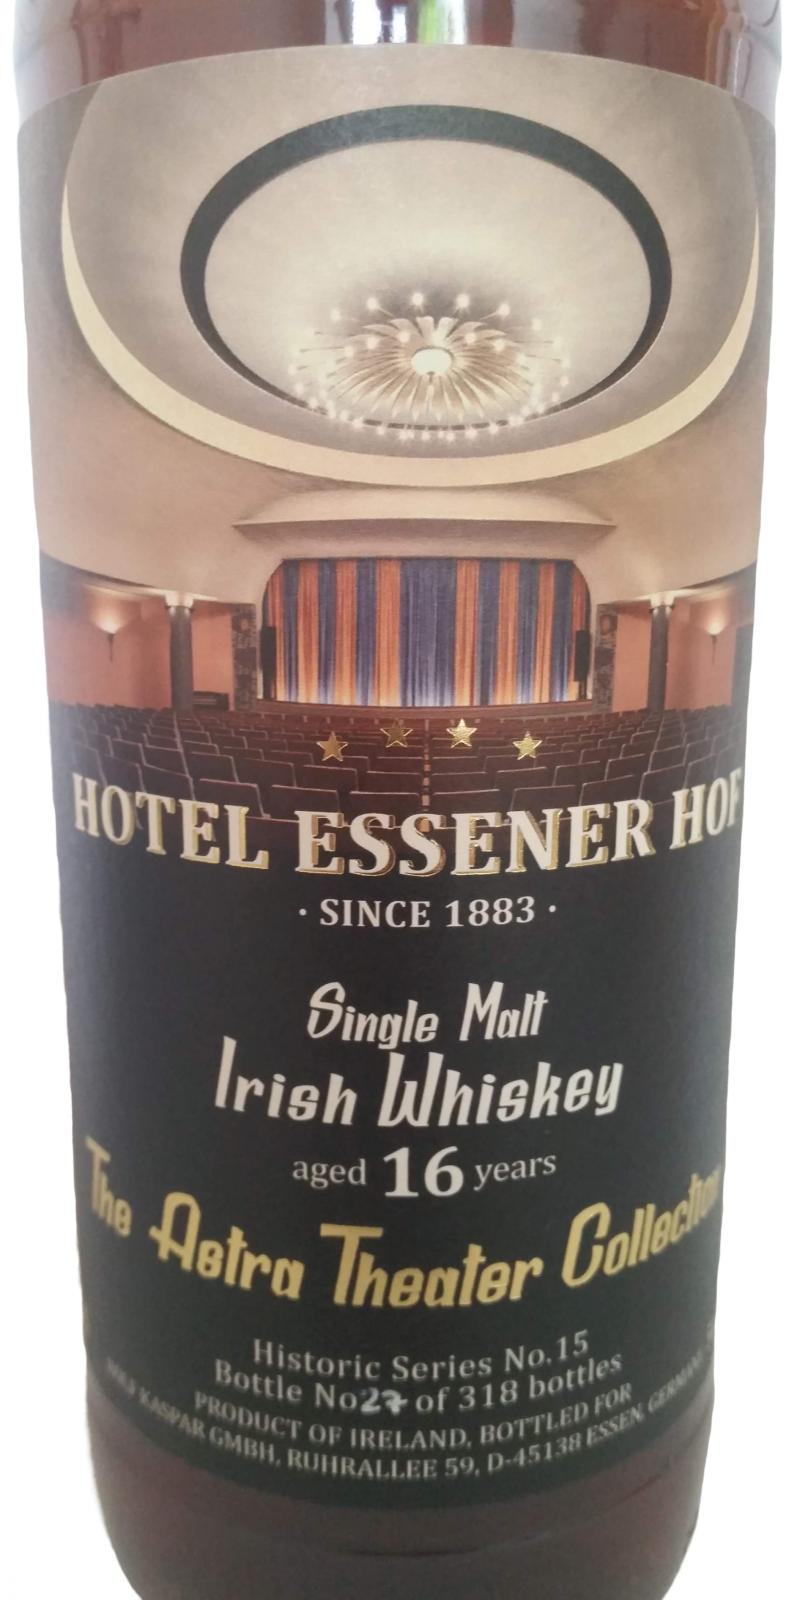 Single Malt Irish Whiskey 2003 RK